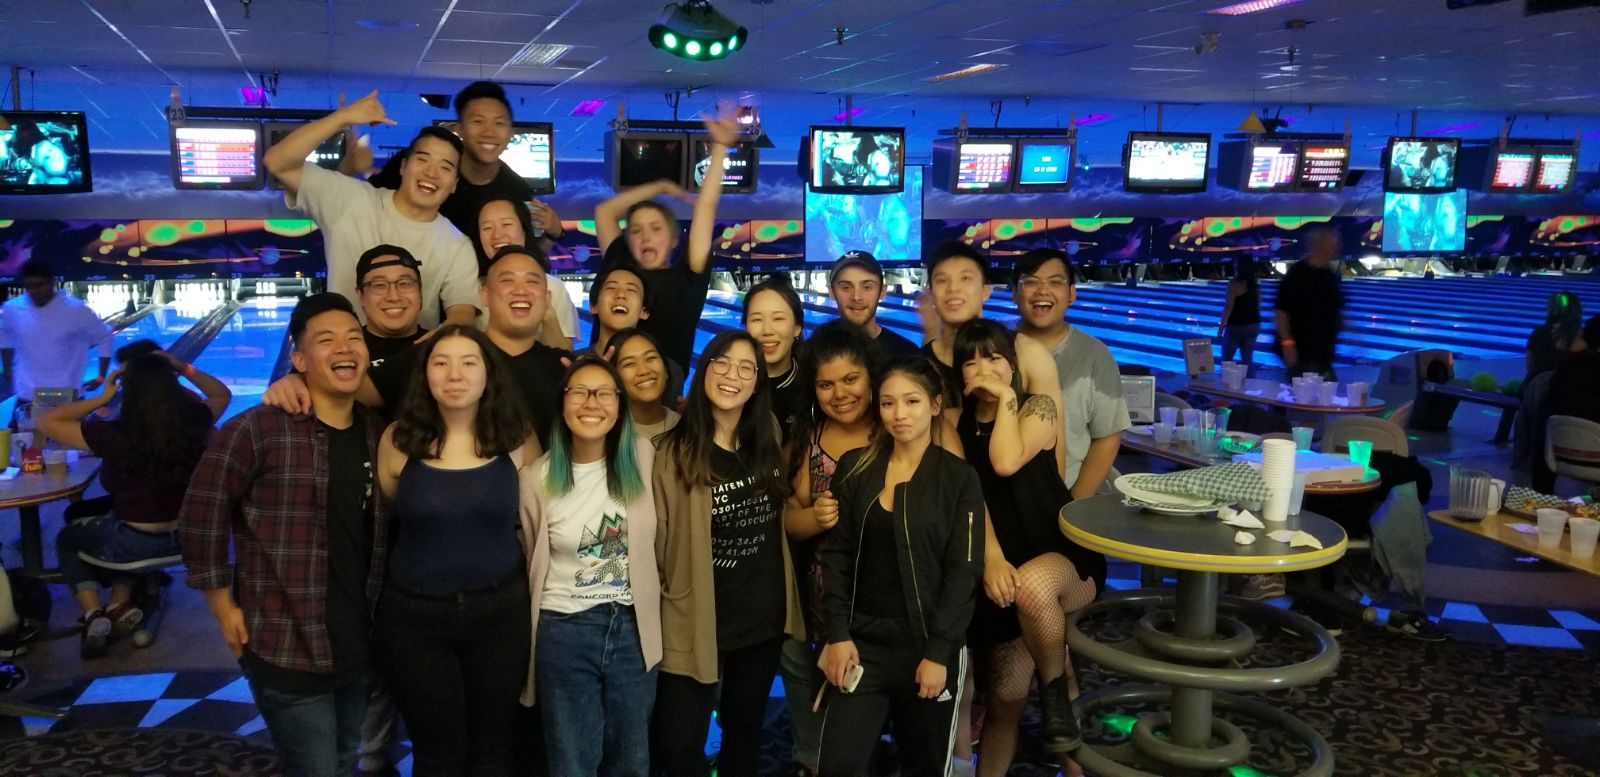 Bowling Aug 24, 2018